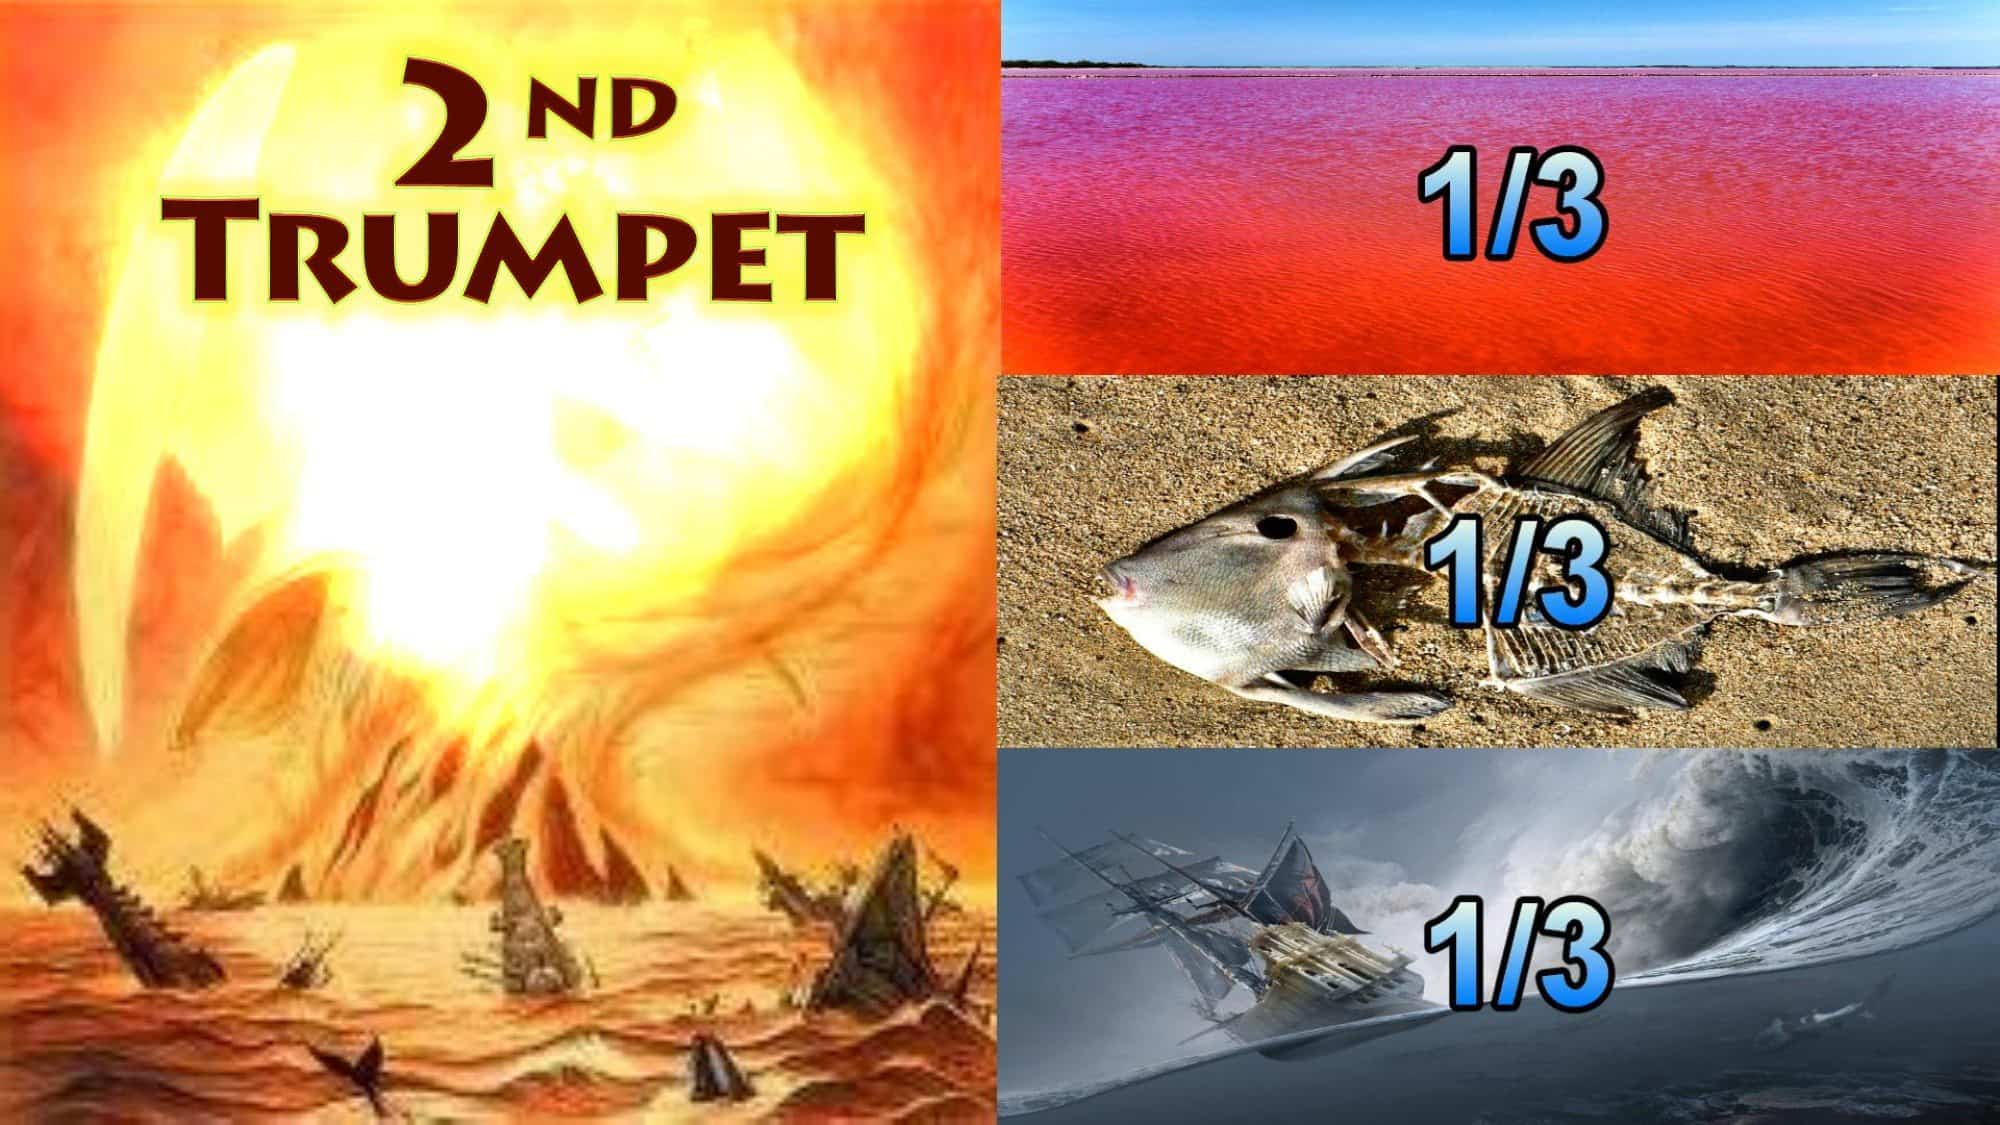 Second Trumpet,Something Like a,great Mountain Burning,Fire,Third Sea Blood,Third Sea Creachers Died,Third Boats Wrecked,destroyed,Seven Trumpets,Book of Revelation,Revelation Chapter 8,Apocalypse